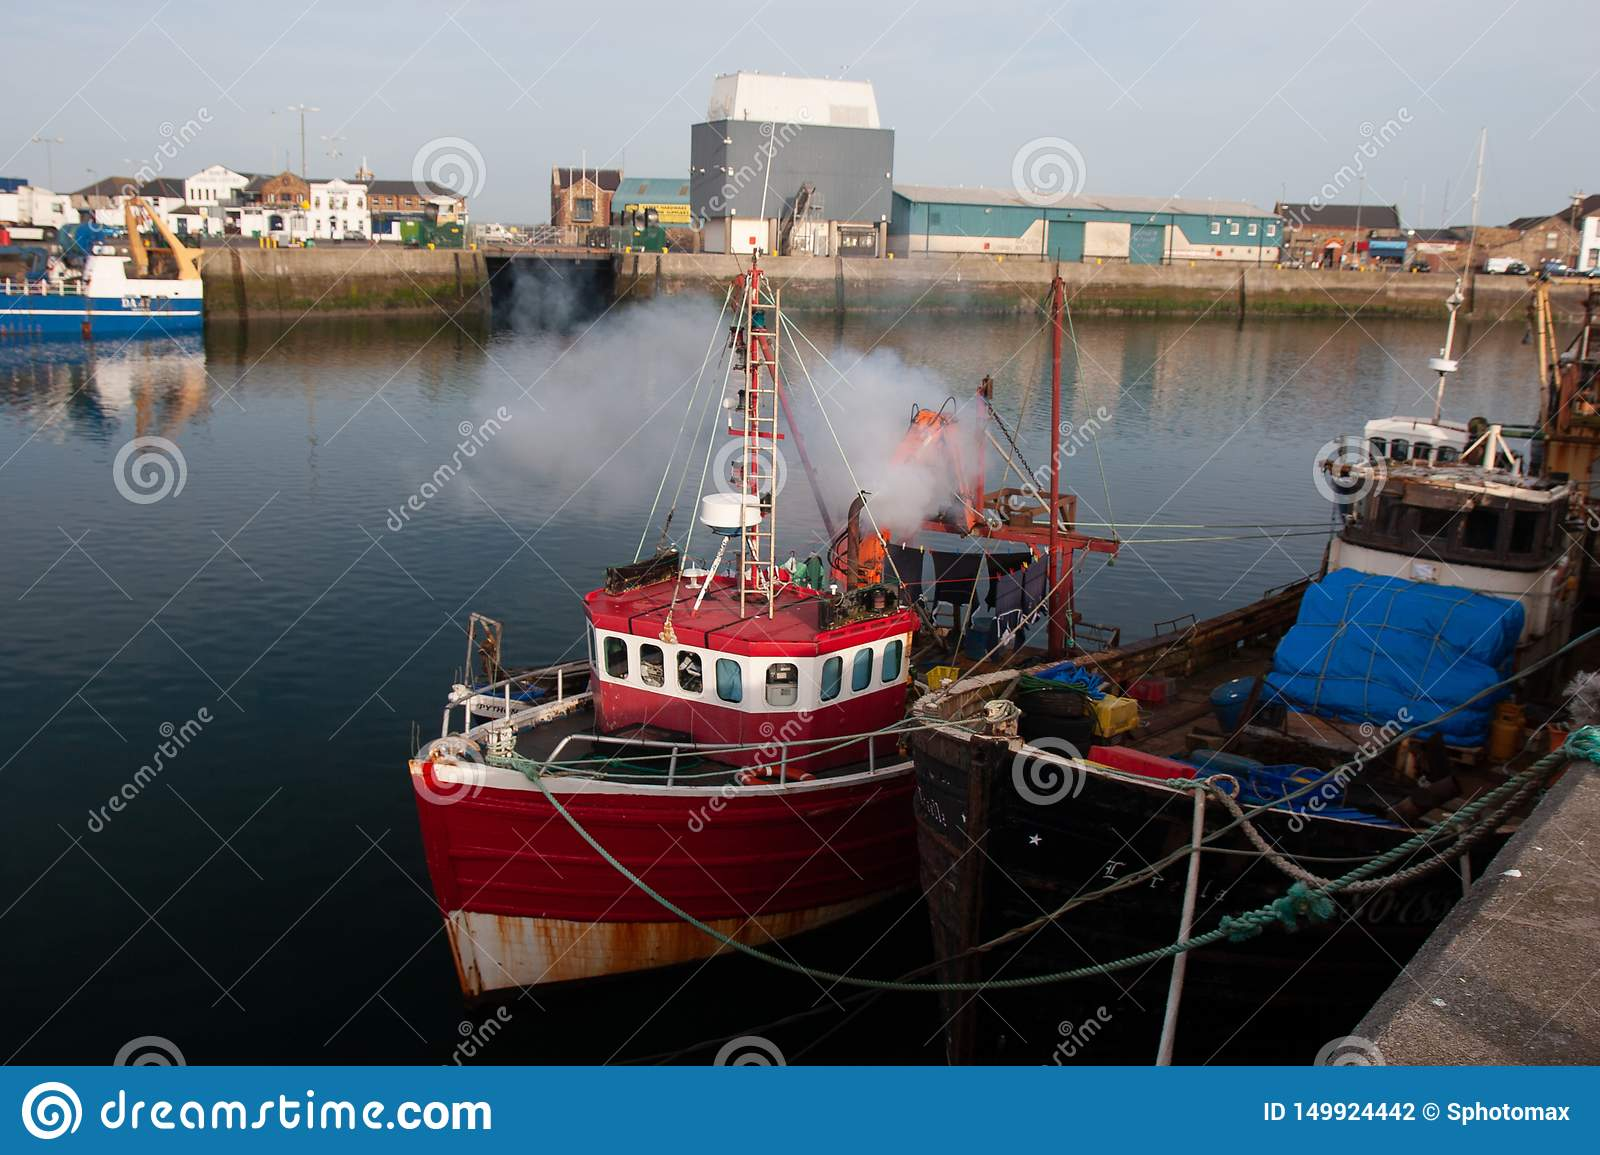 Irish fishing boats in Port of Howth, County Leinster Dublin Ireland.